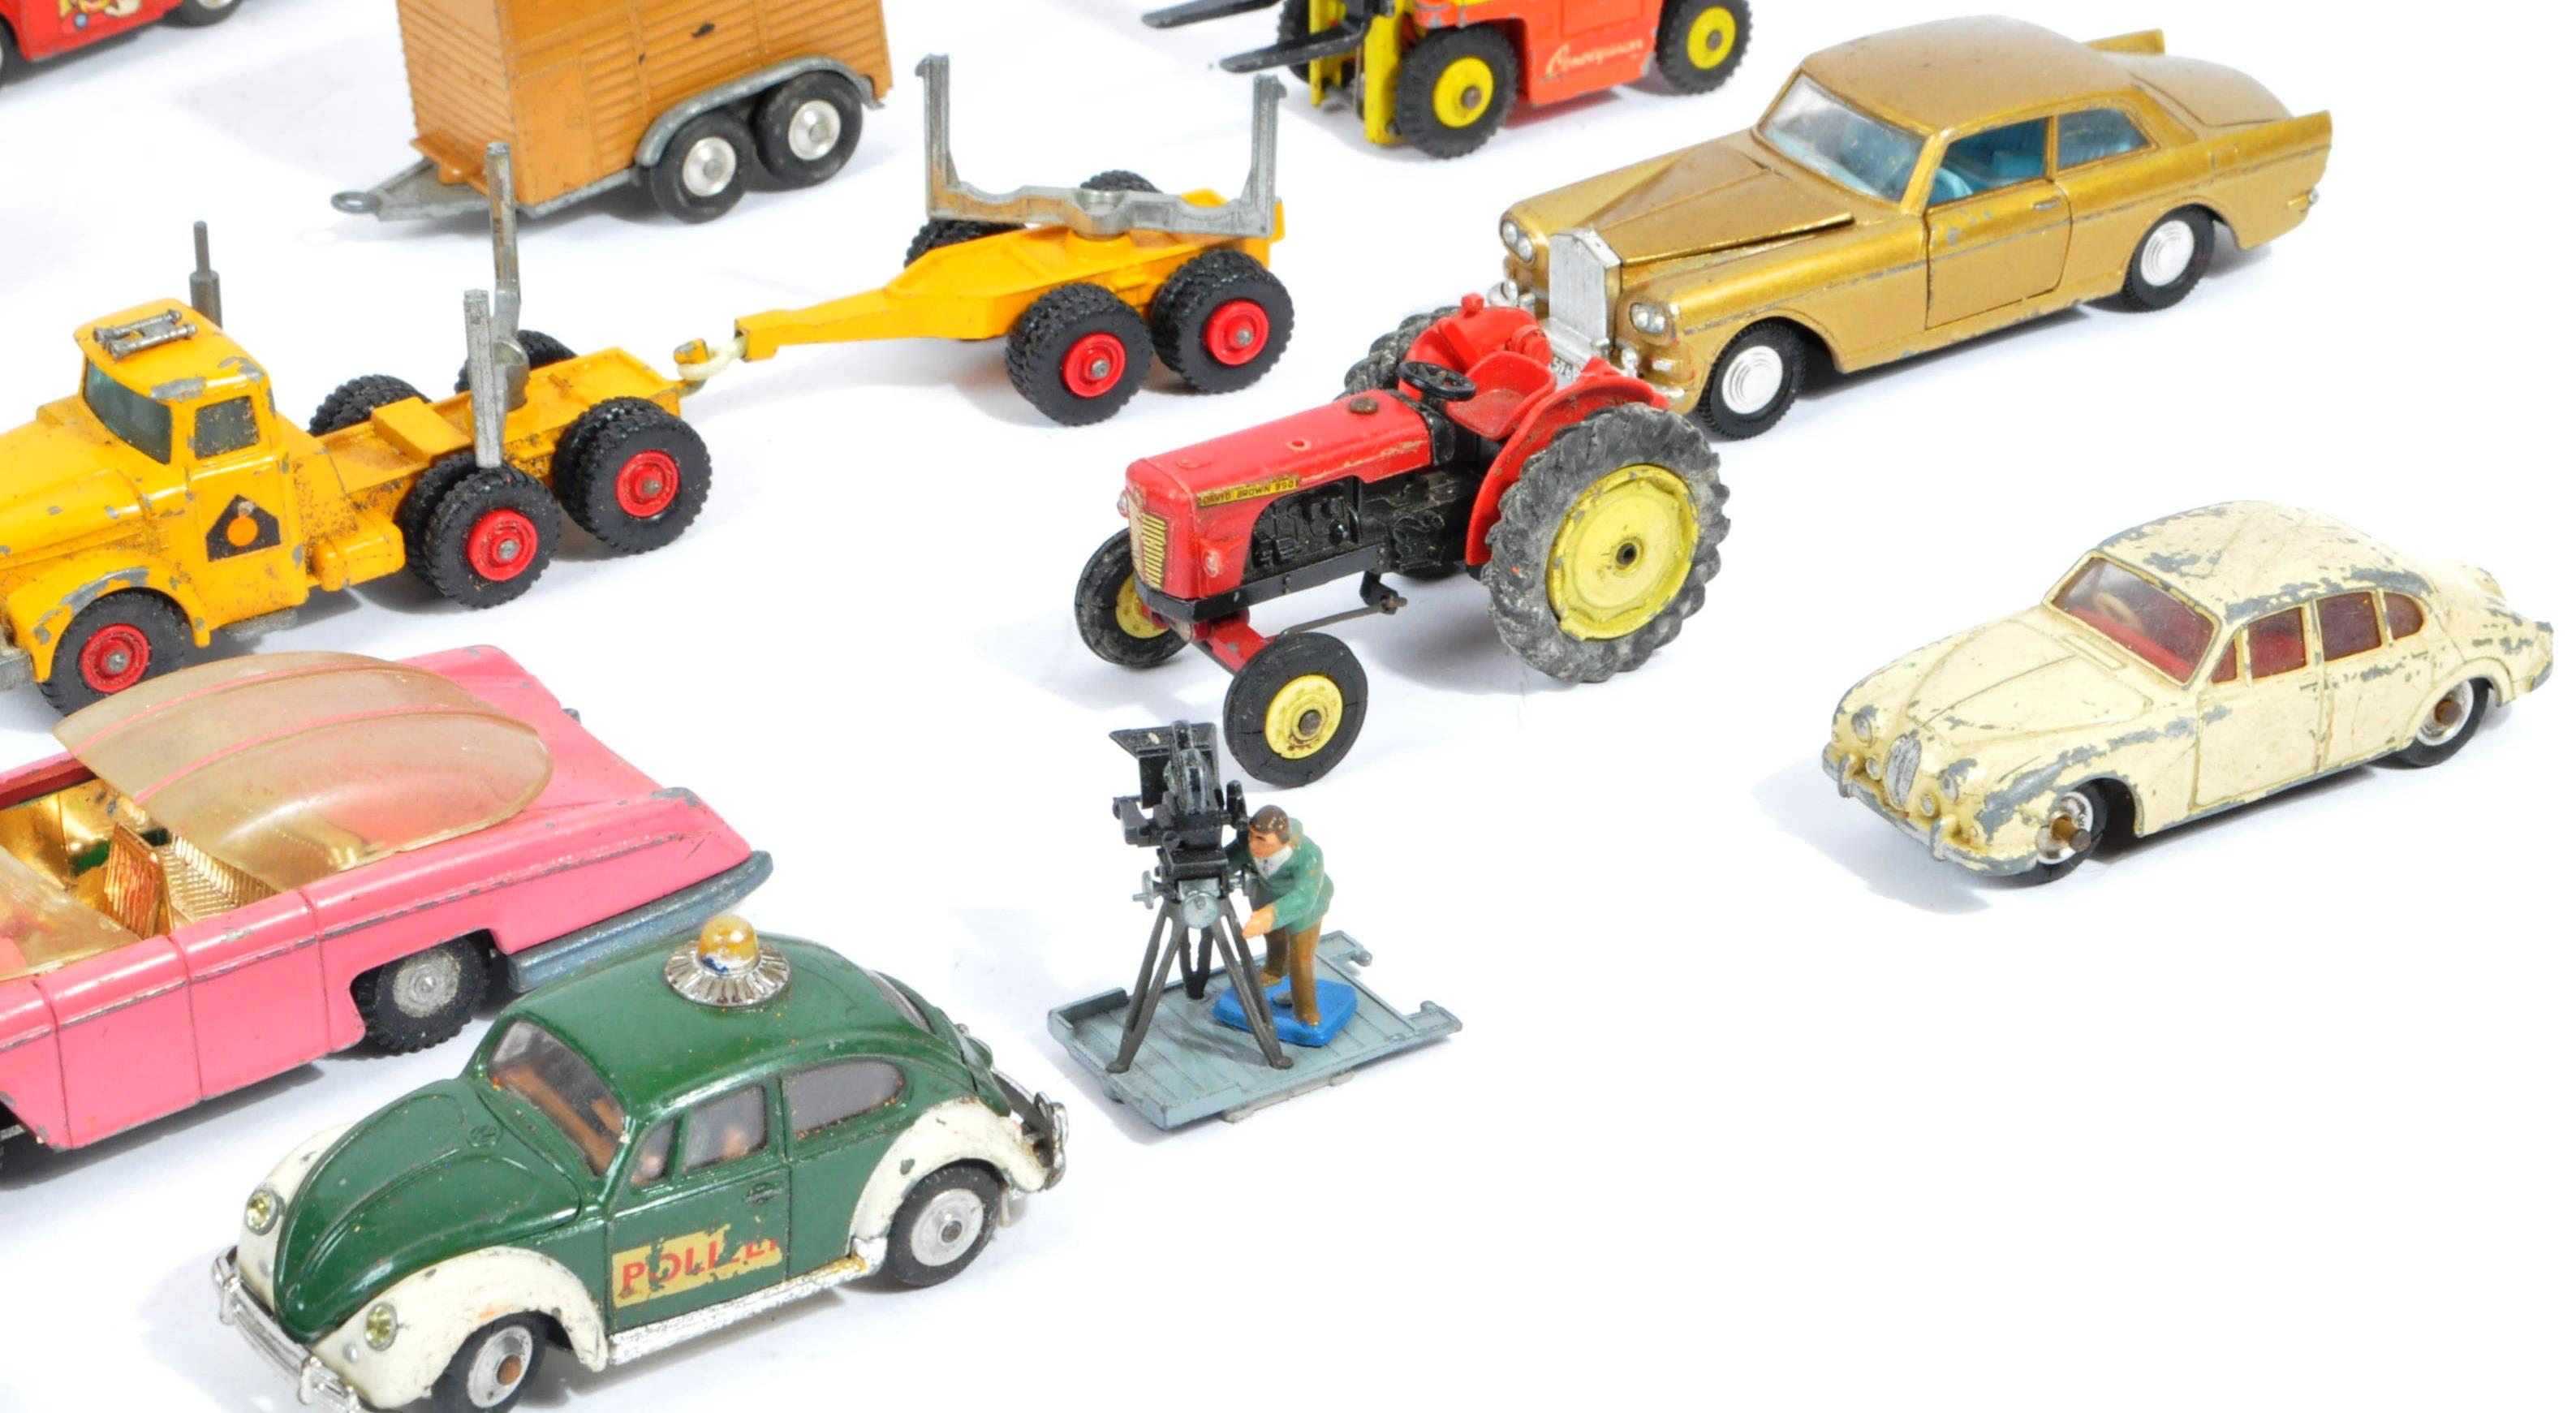 COLLECTION OF VINTAGE CORGI & DINKY TOYS DIECAST MODELS - Image 6 of 10